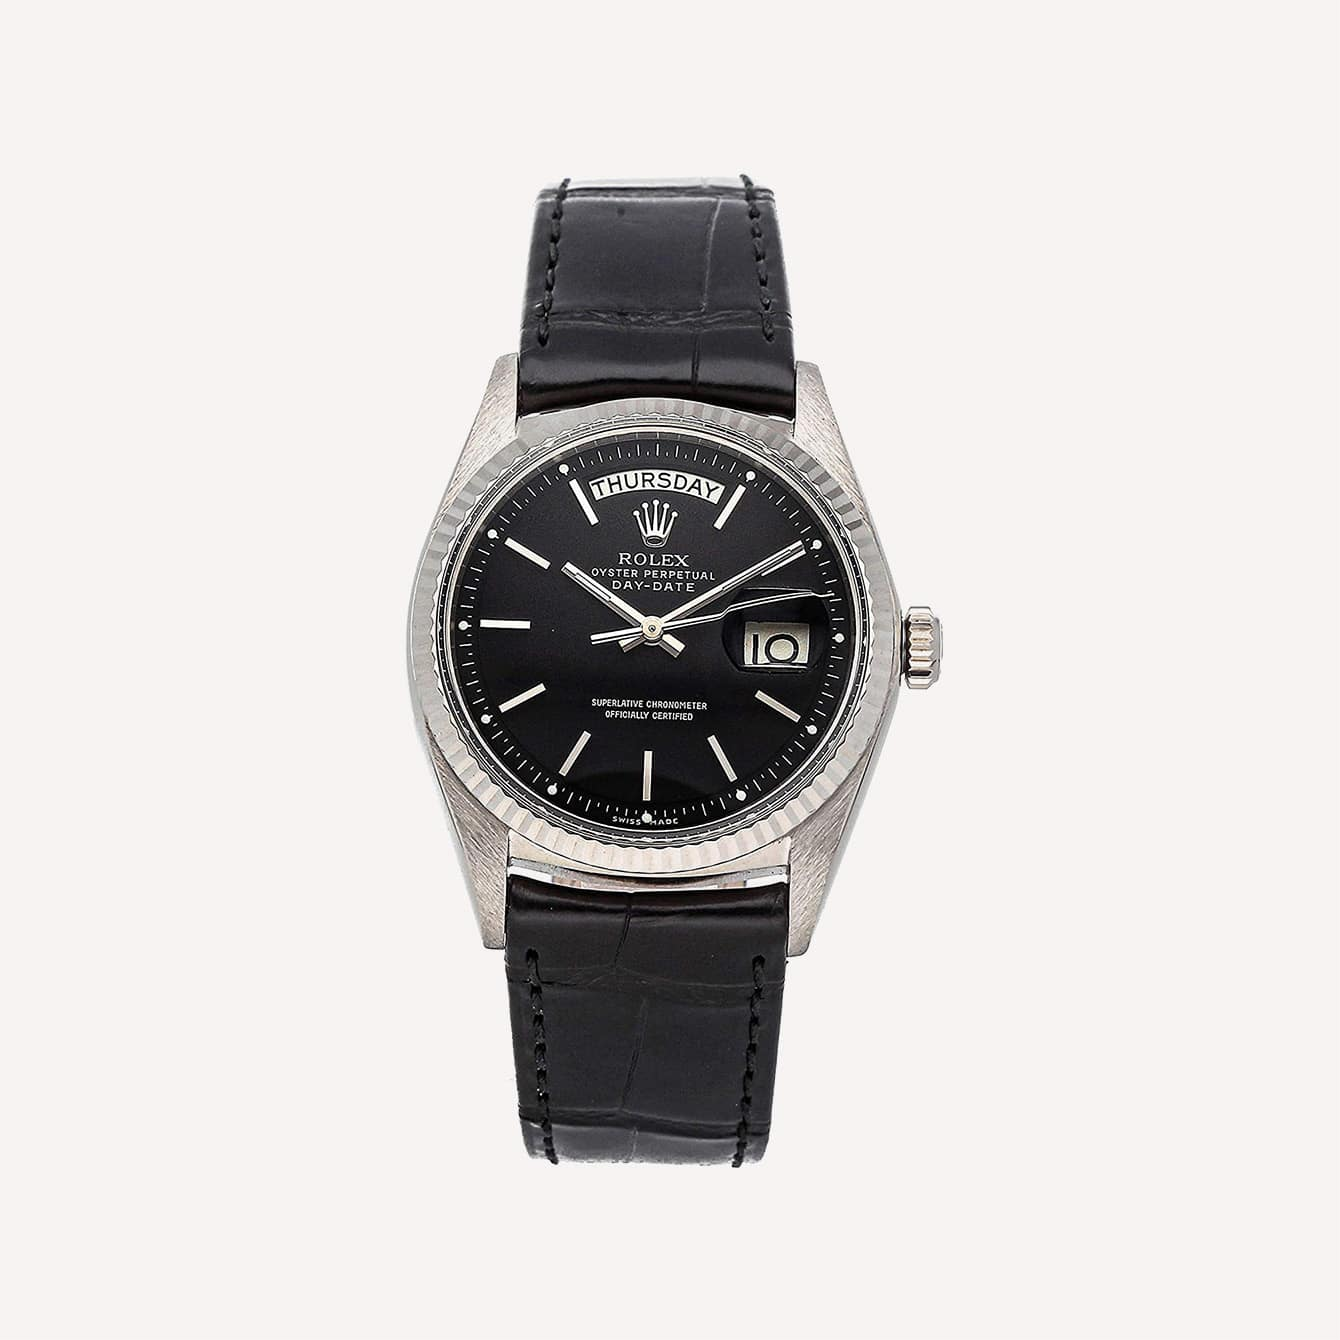 Rolex Day Date Mechanical Automatic Mens Watch